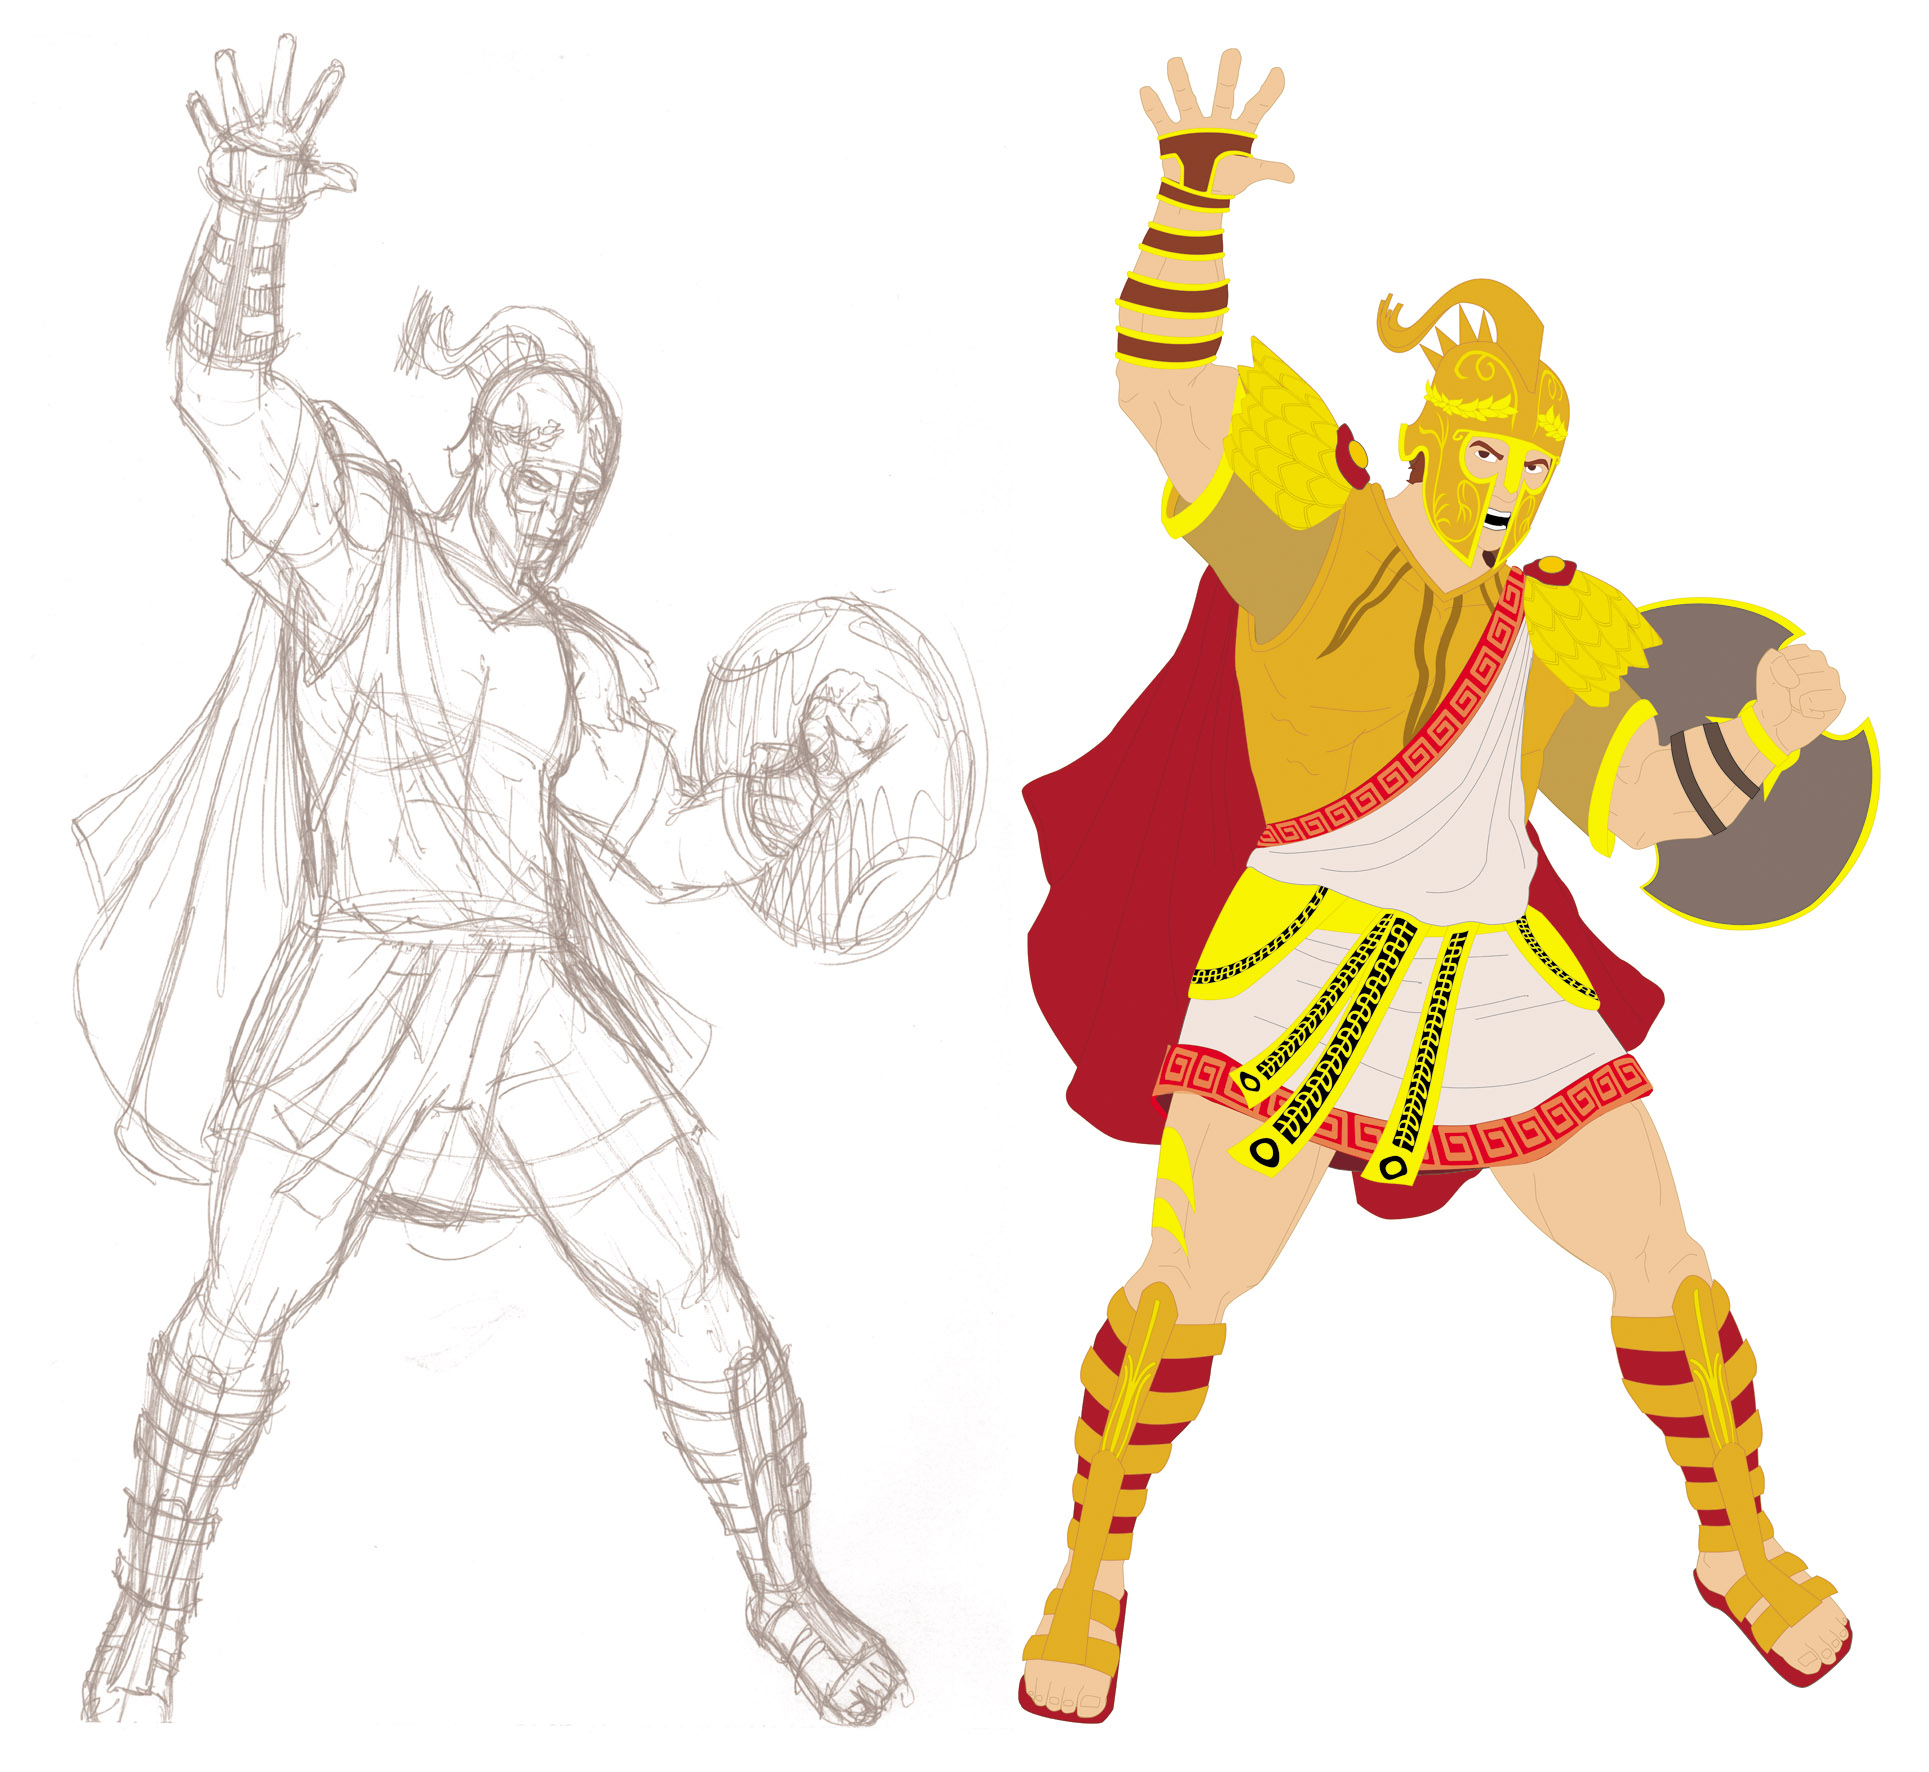 essay god helios sun Helios was one of the titans, son of hyperion and theia and brother of eos (the dawn) and selene (the moon)the personification of the sun, he was portrayed as driving a four-horse chariot across the sky on a daily basis.